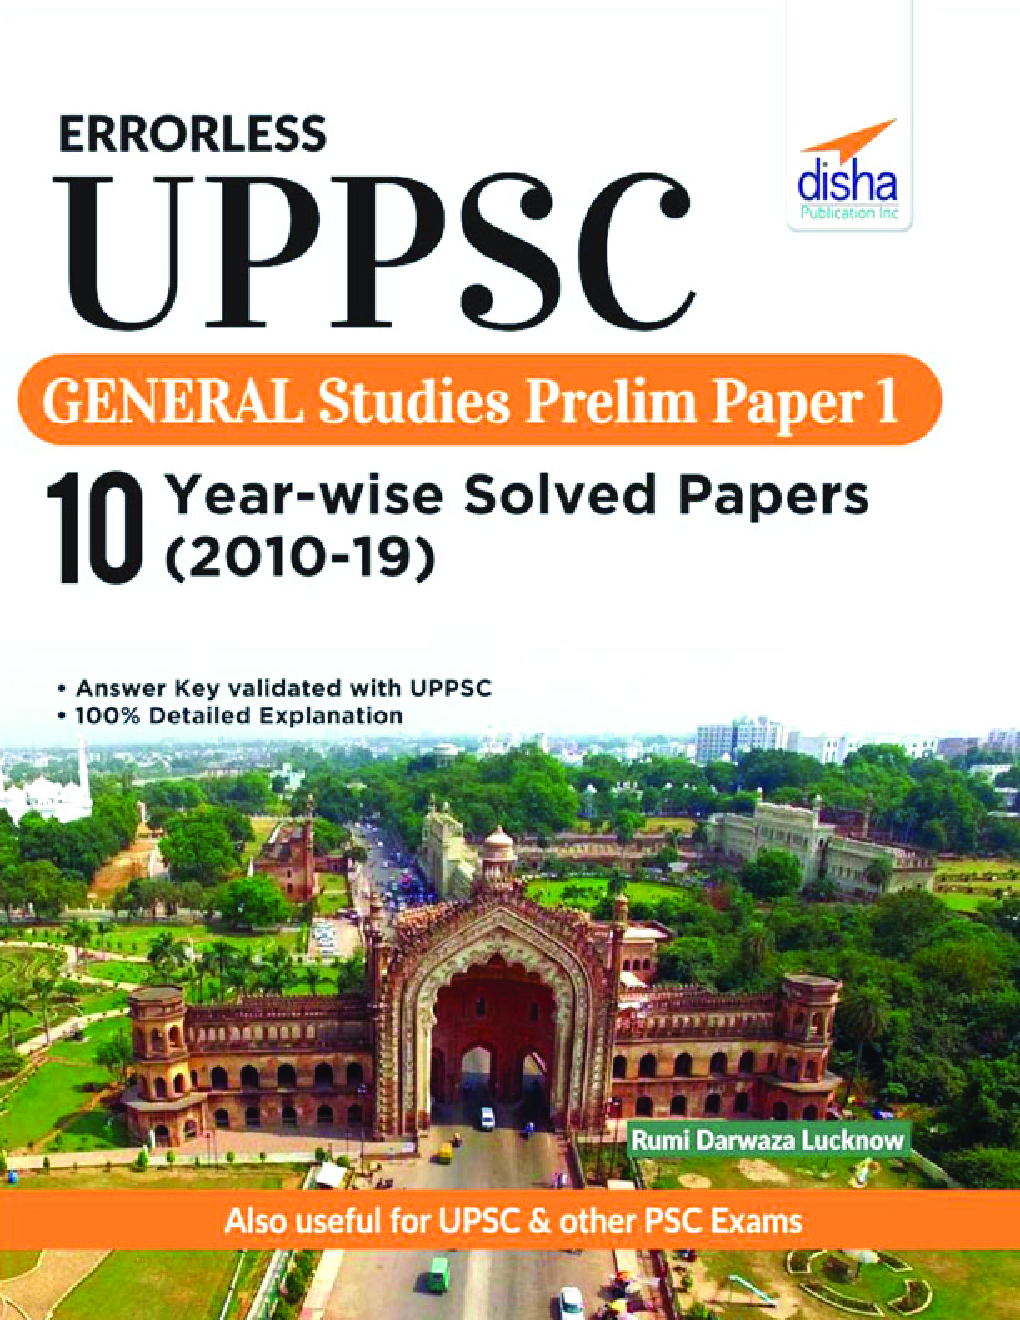 Errorless UPPSC General Studies Prelim Paper 1 - 10 Year-Wise Solved Papers (2010 - 19) - Page 1